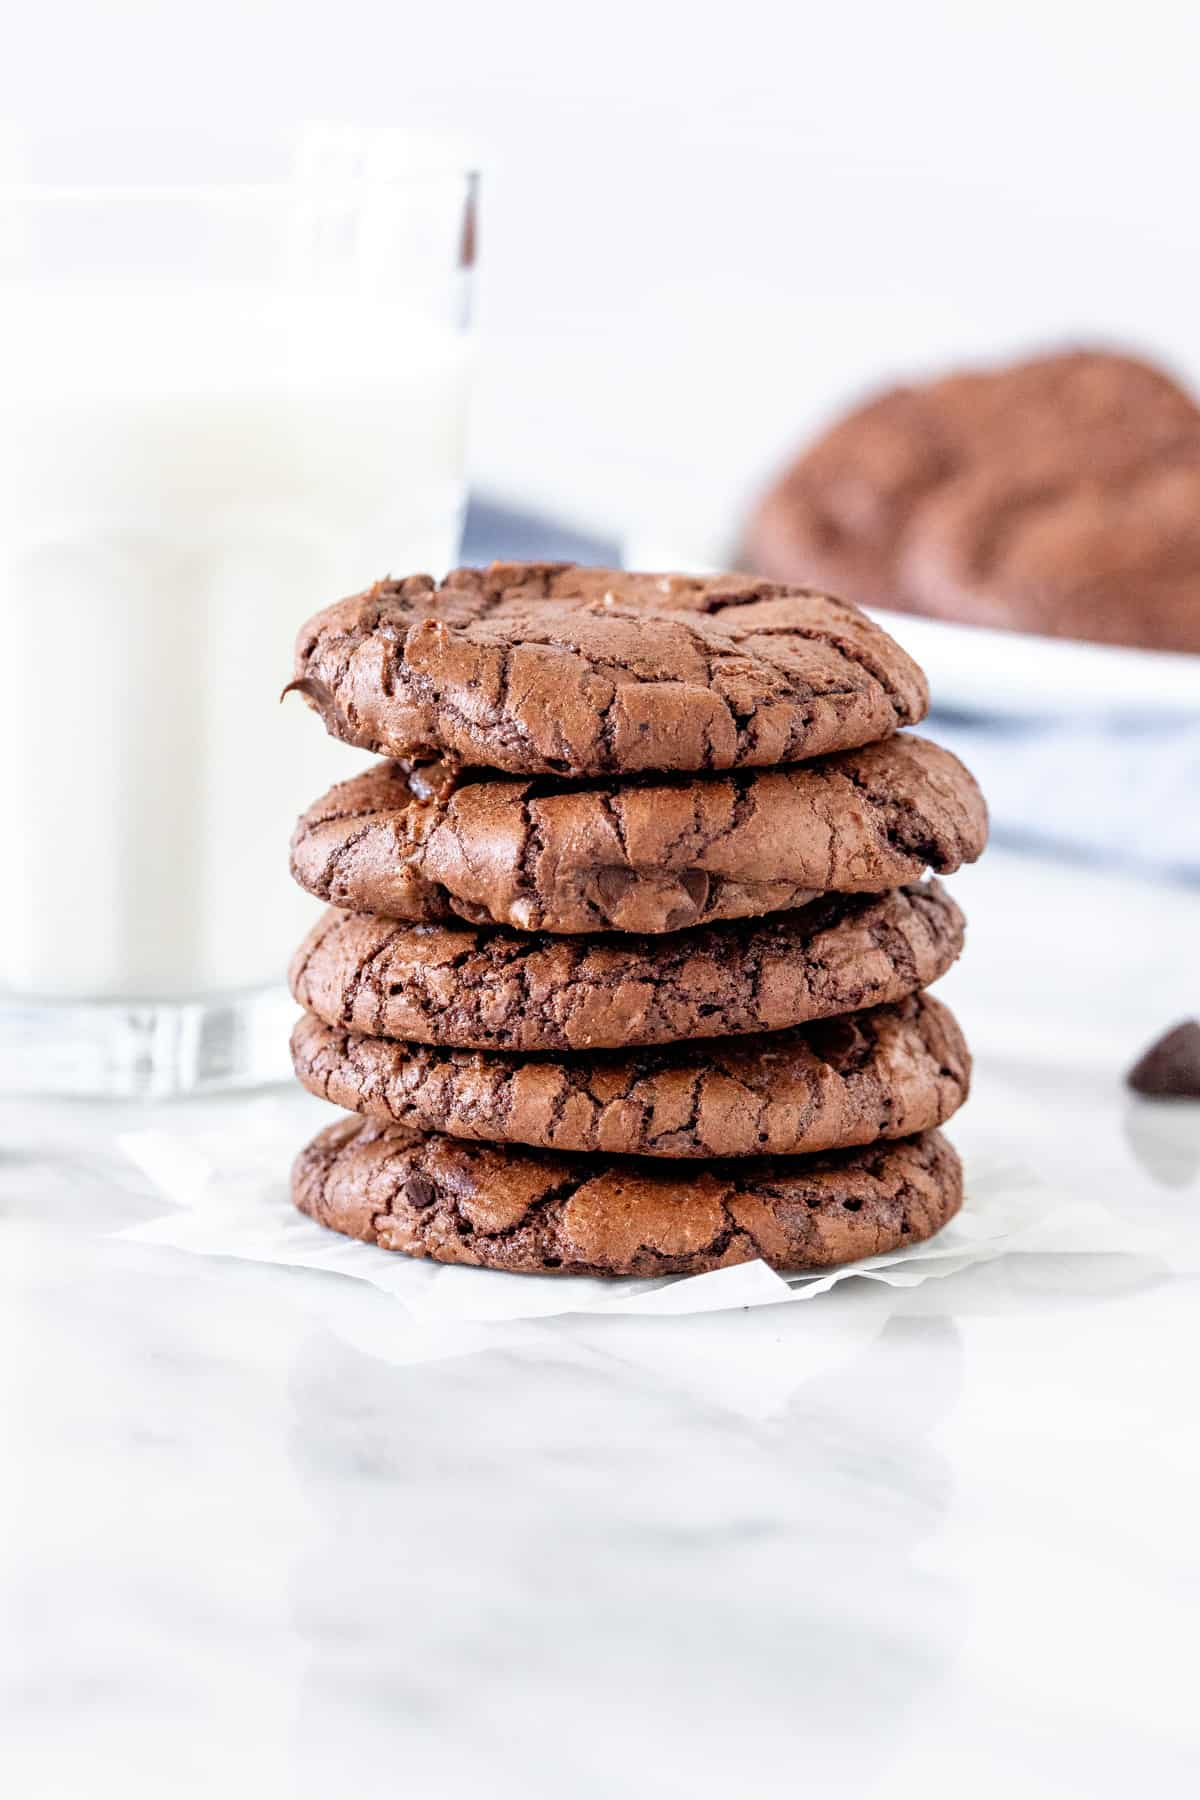 5 brownie cookies stacked on top of each other.